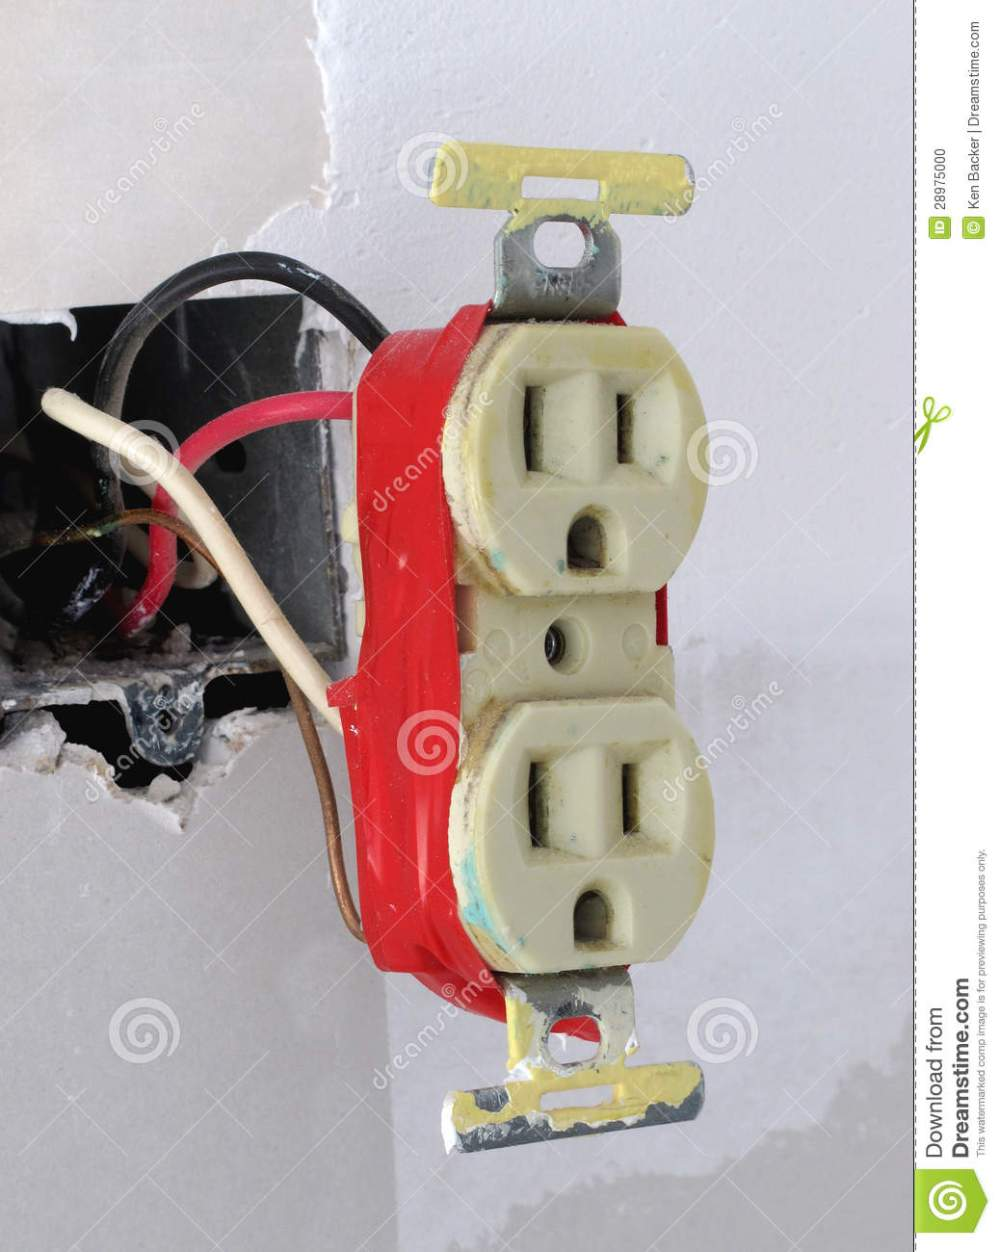 medium resolution of two plug electrical outlet